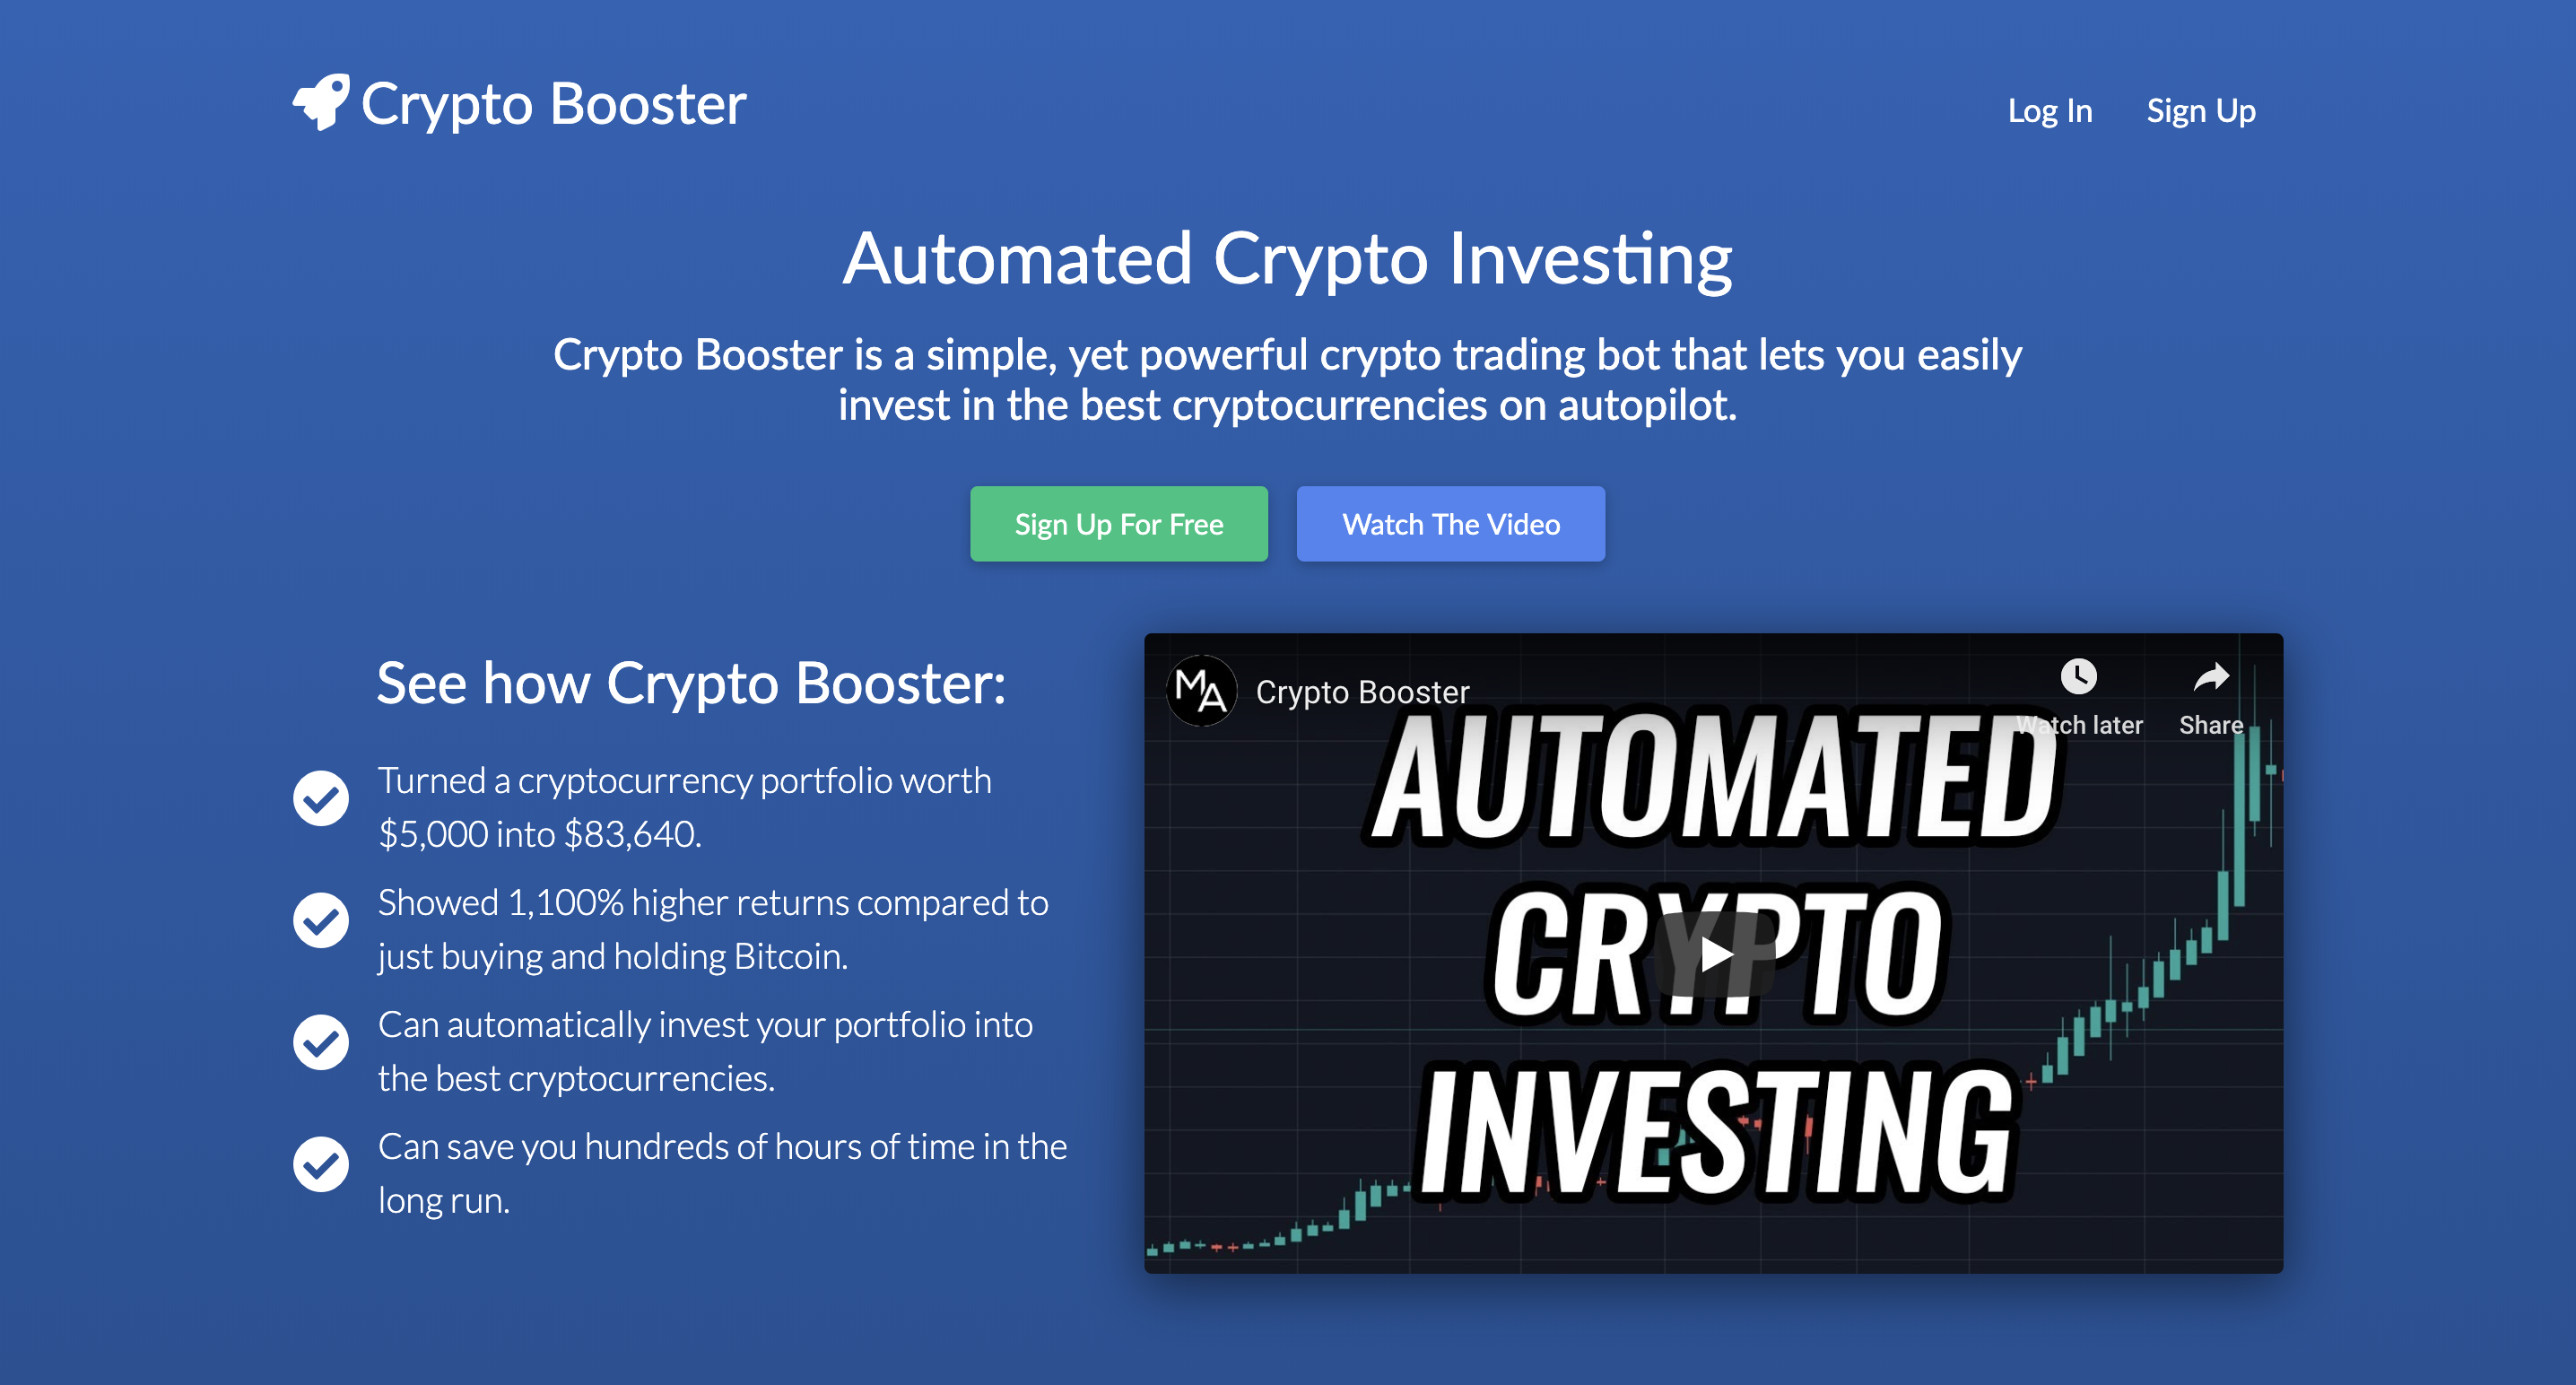 Crypto Booster